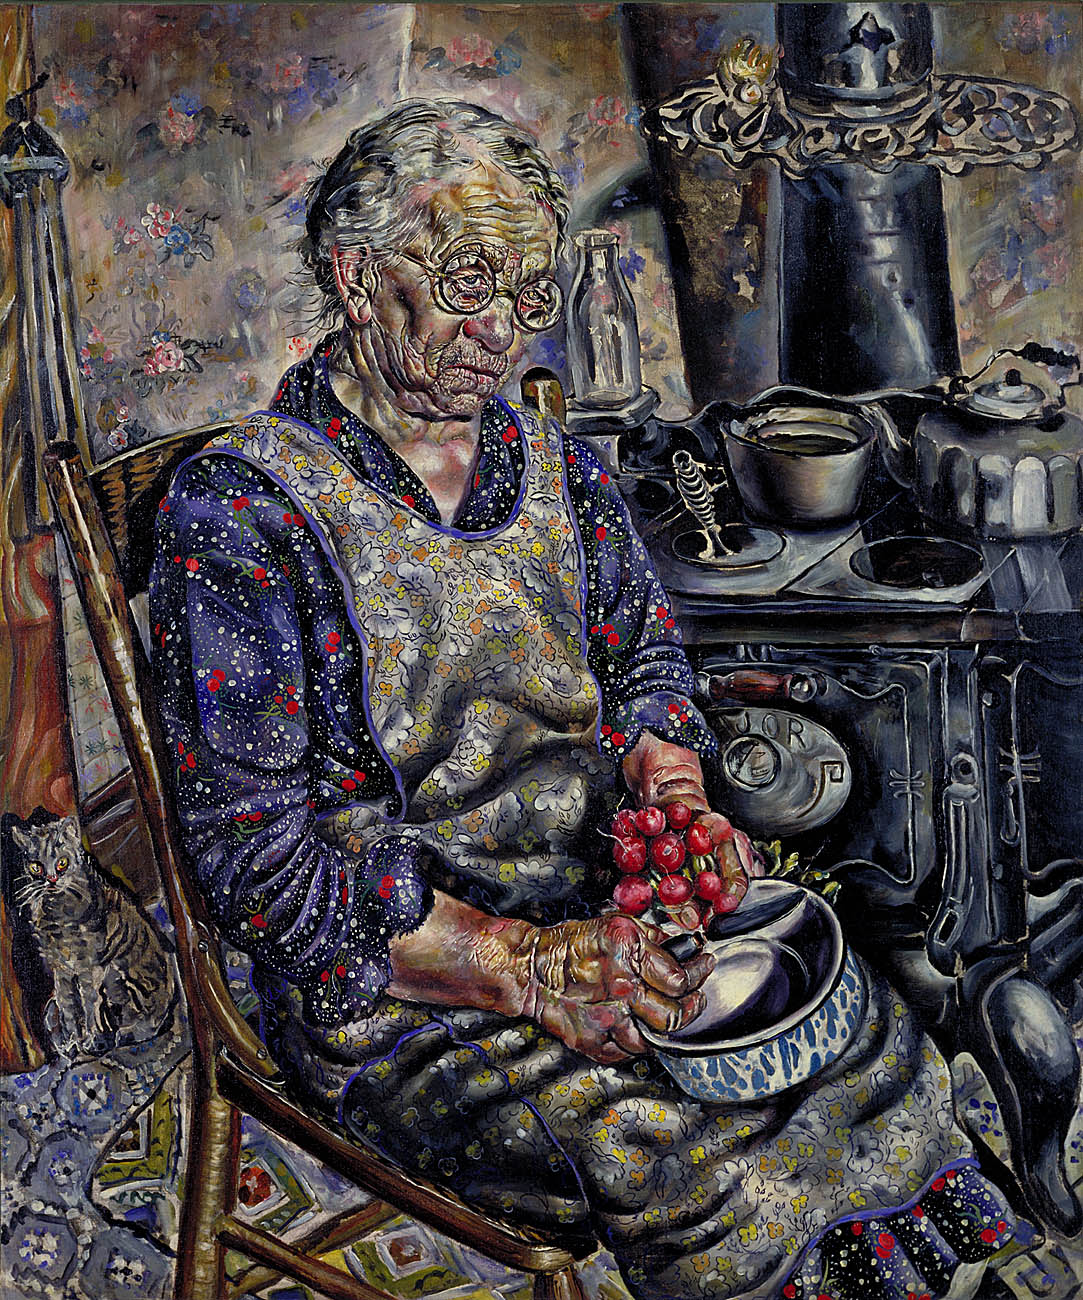 https://i2.wp.com/uploads4.wikipaintings.org/images/ivan-albright/the-farmer-s-kitchen.jpg